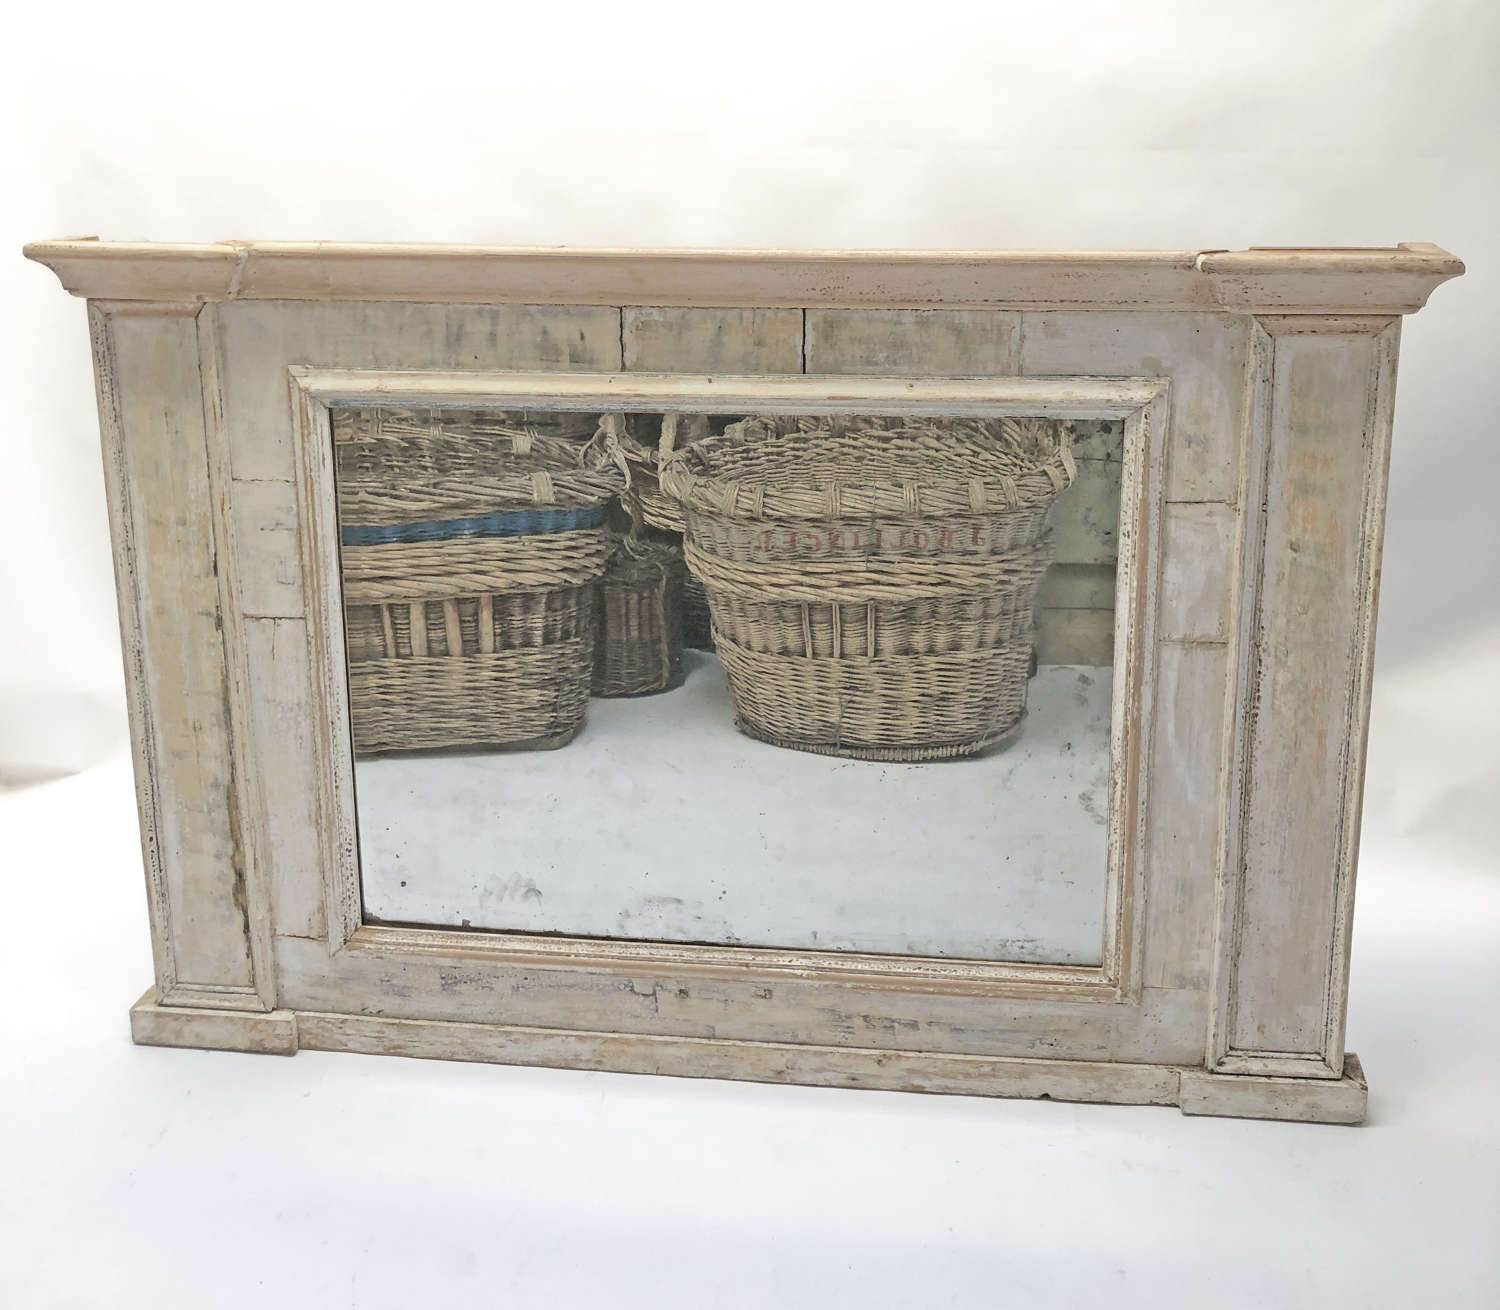 French 18th c wide Trumeau Mirror with original paint - circa 1750